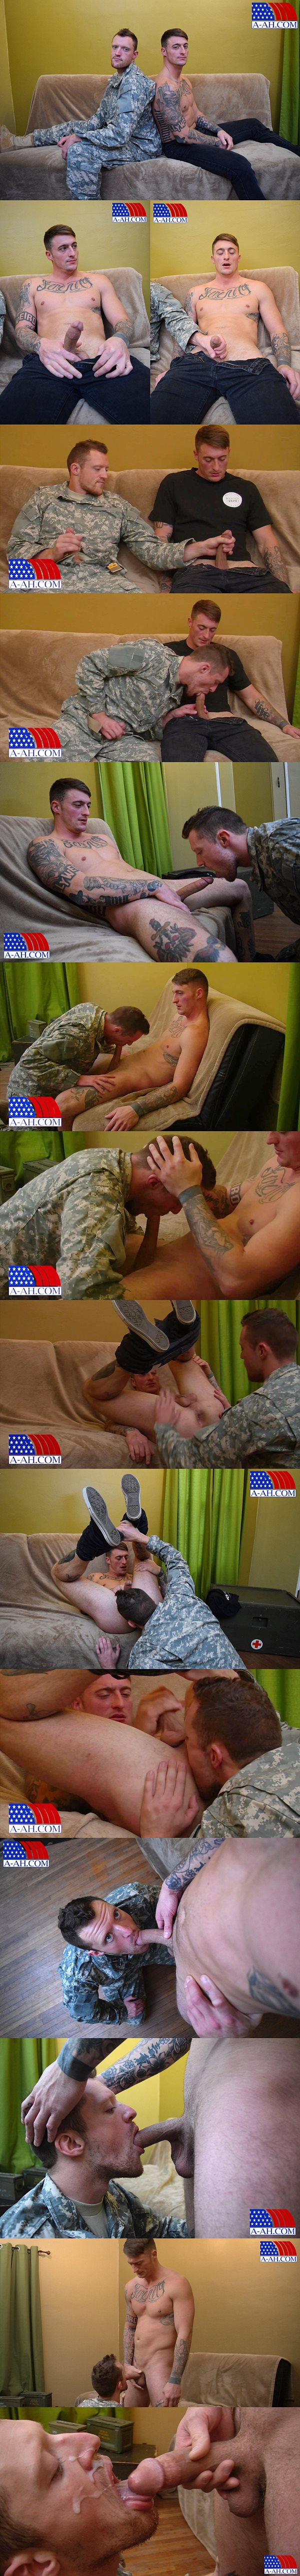 Handsome corporal Dane gets his first gay blowjob until Dane gives his macho buddy a hot facial at All-americanheroes 02